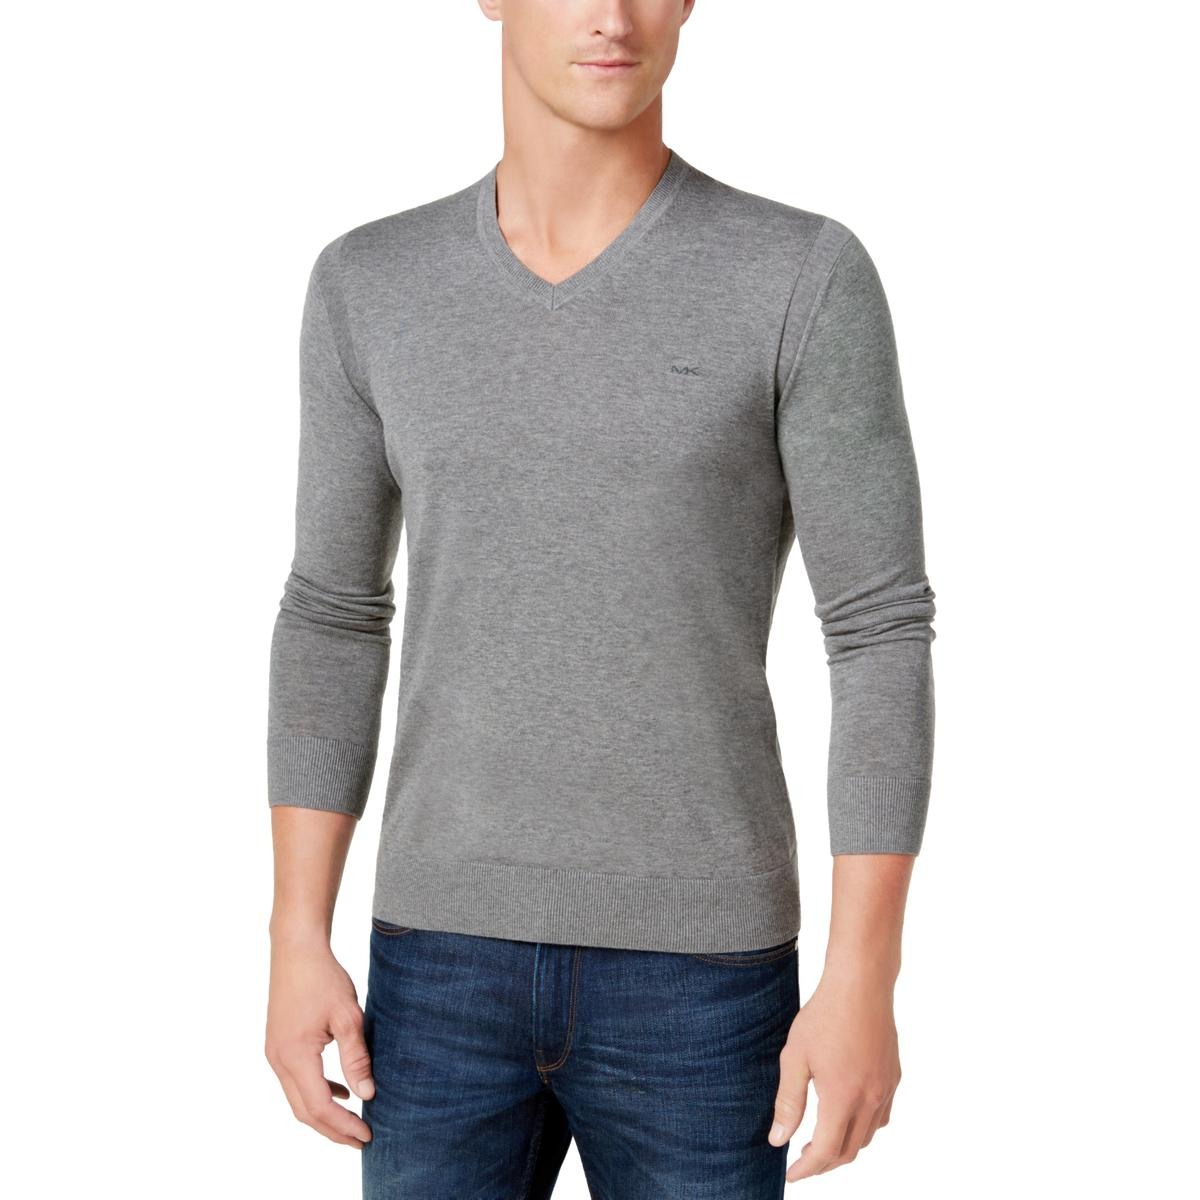 Michael Kors Mens Casual Long Sleeves V-Neck Sweater